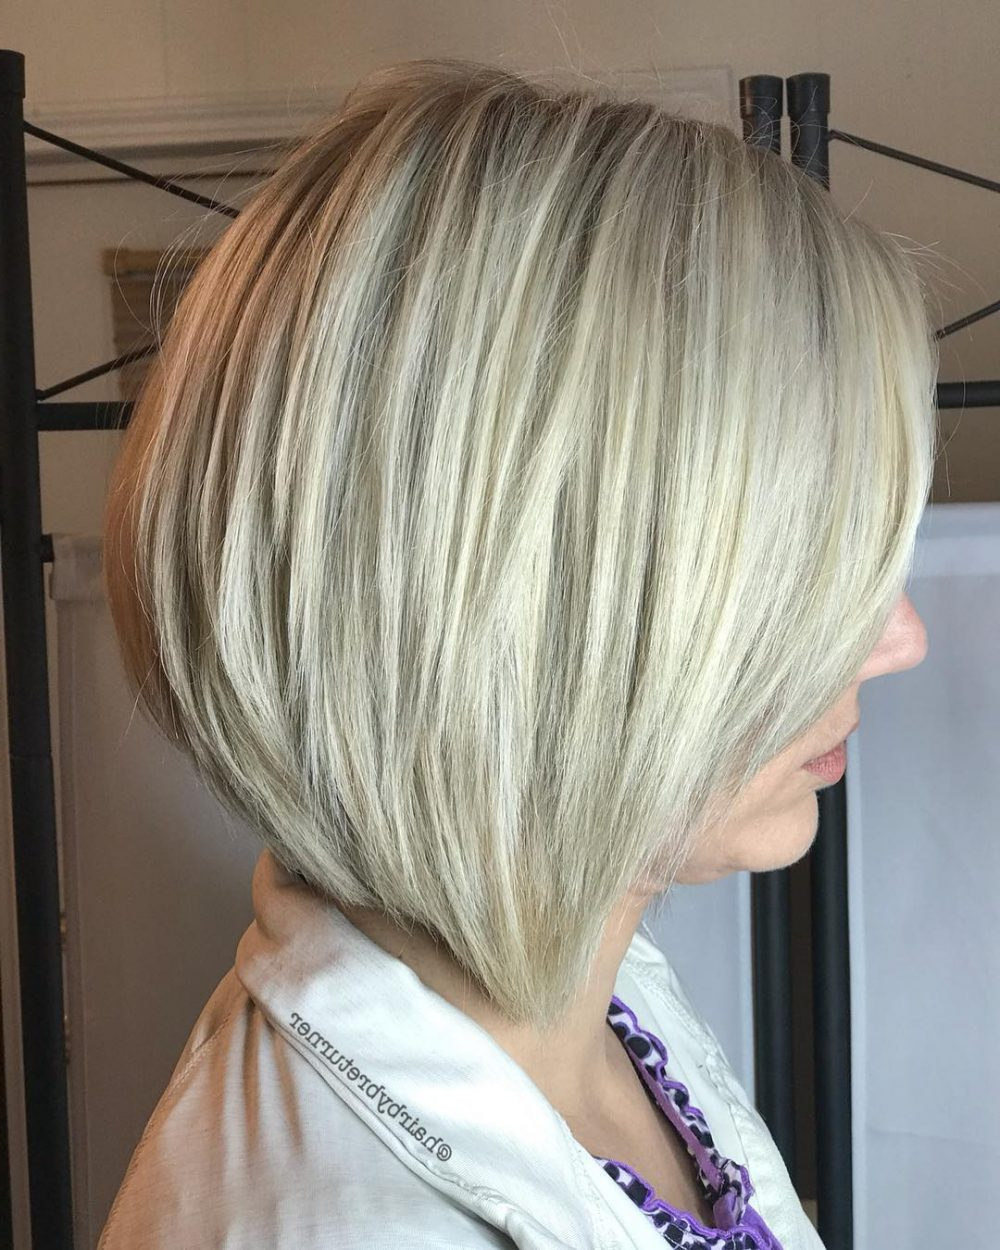 42 Sexiest Short Hairstyles For Women Over 40 In 2018 With Short To Mid Length Hairstyles (View 5 of 25)